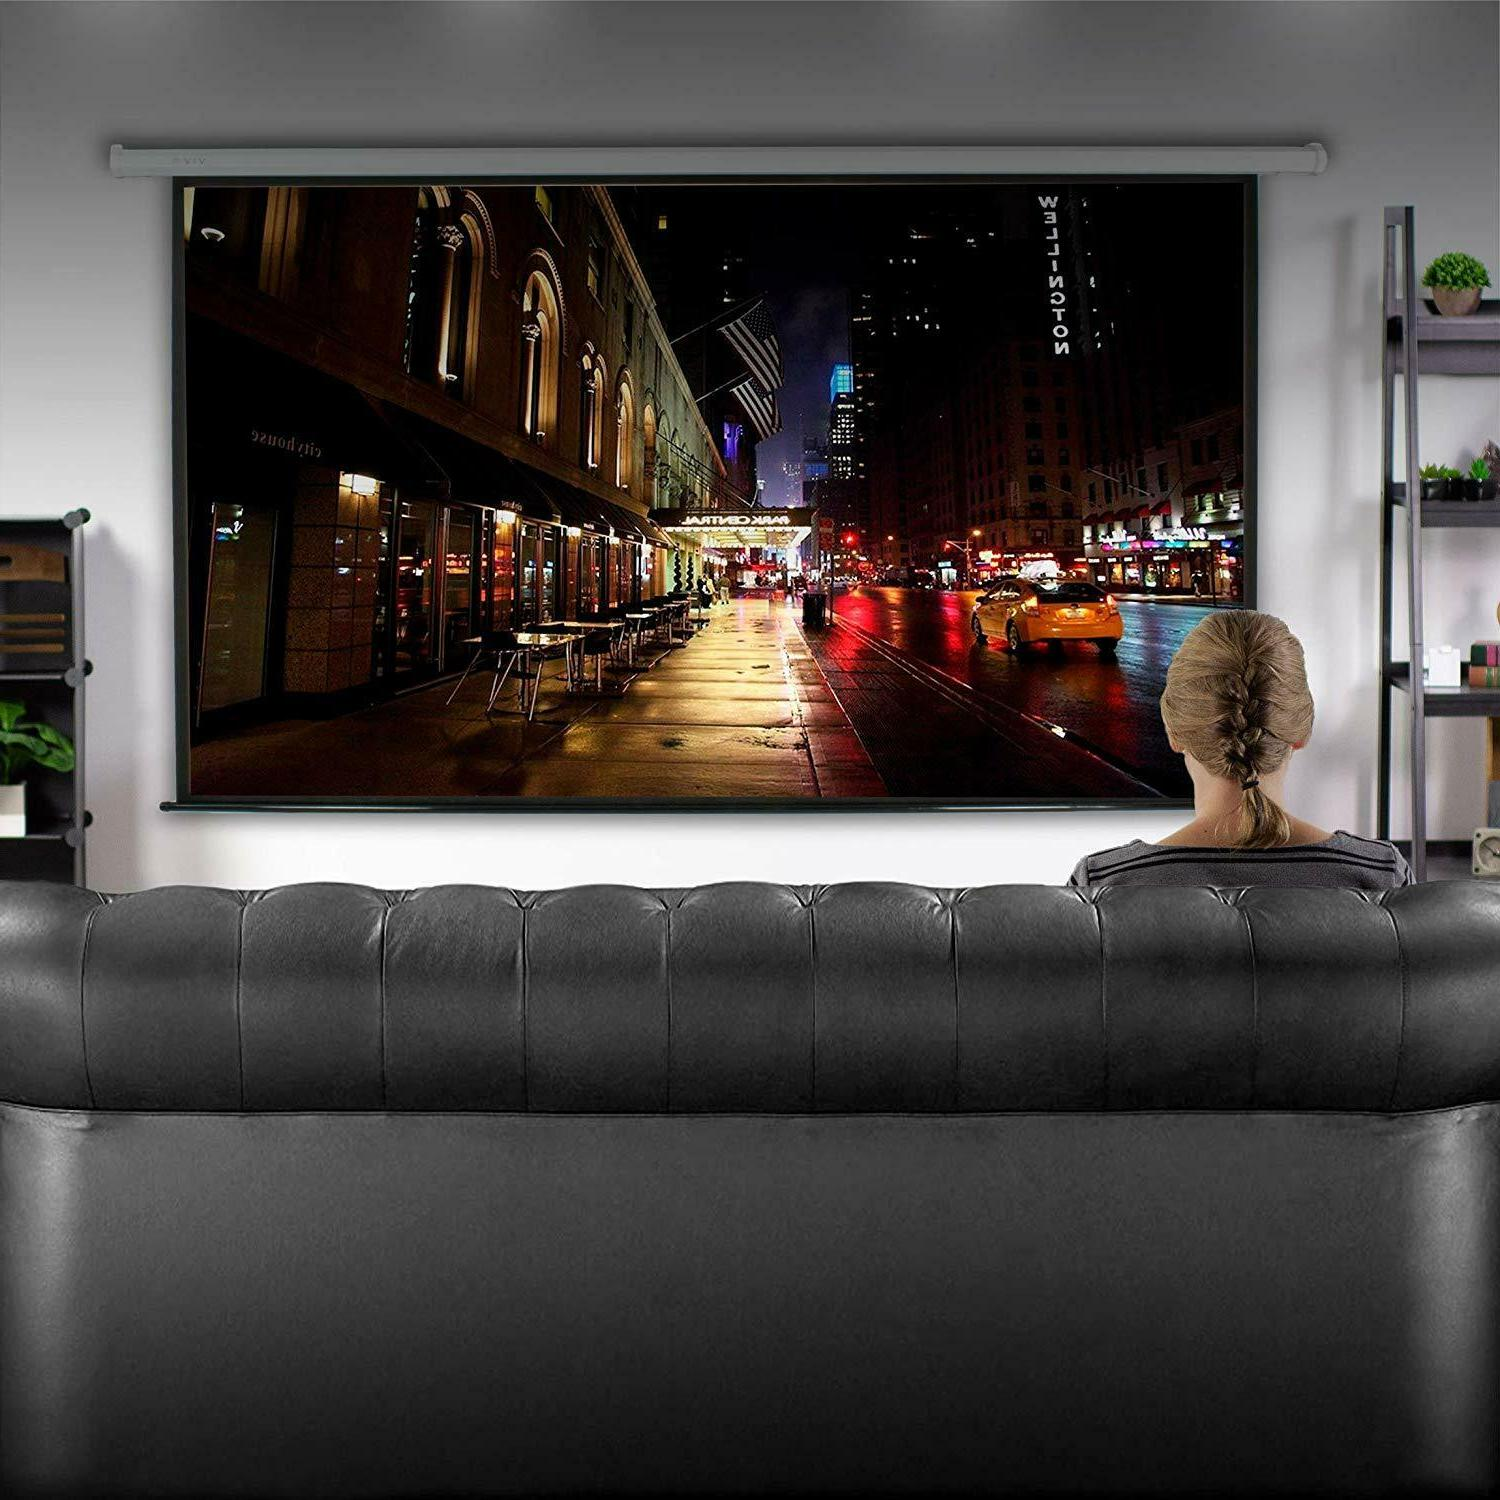 100 projector screen 16 9 projection hd